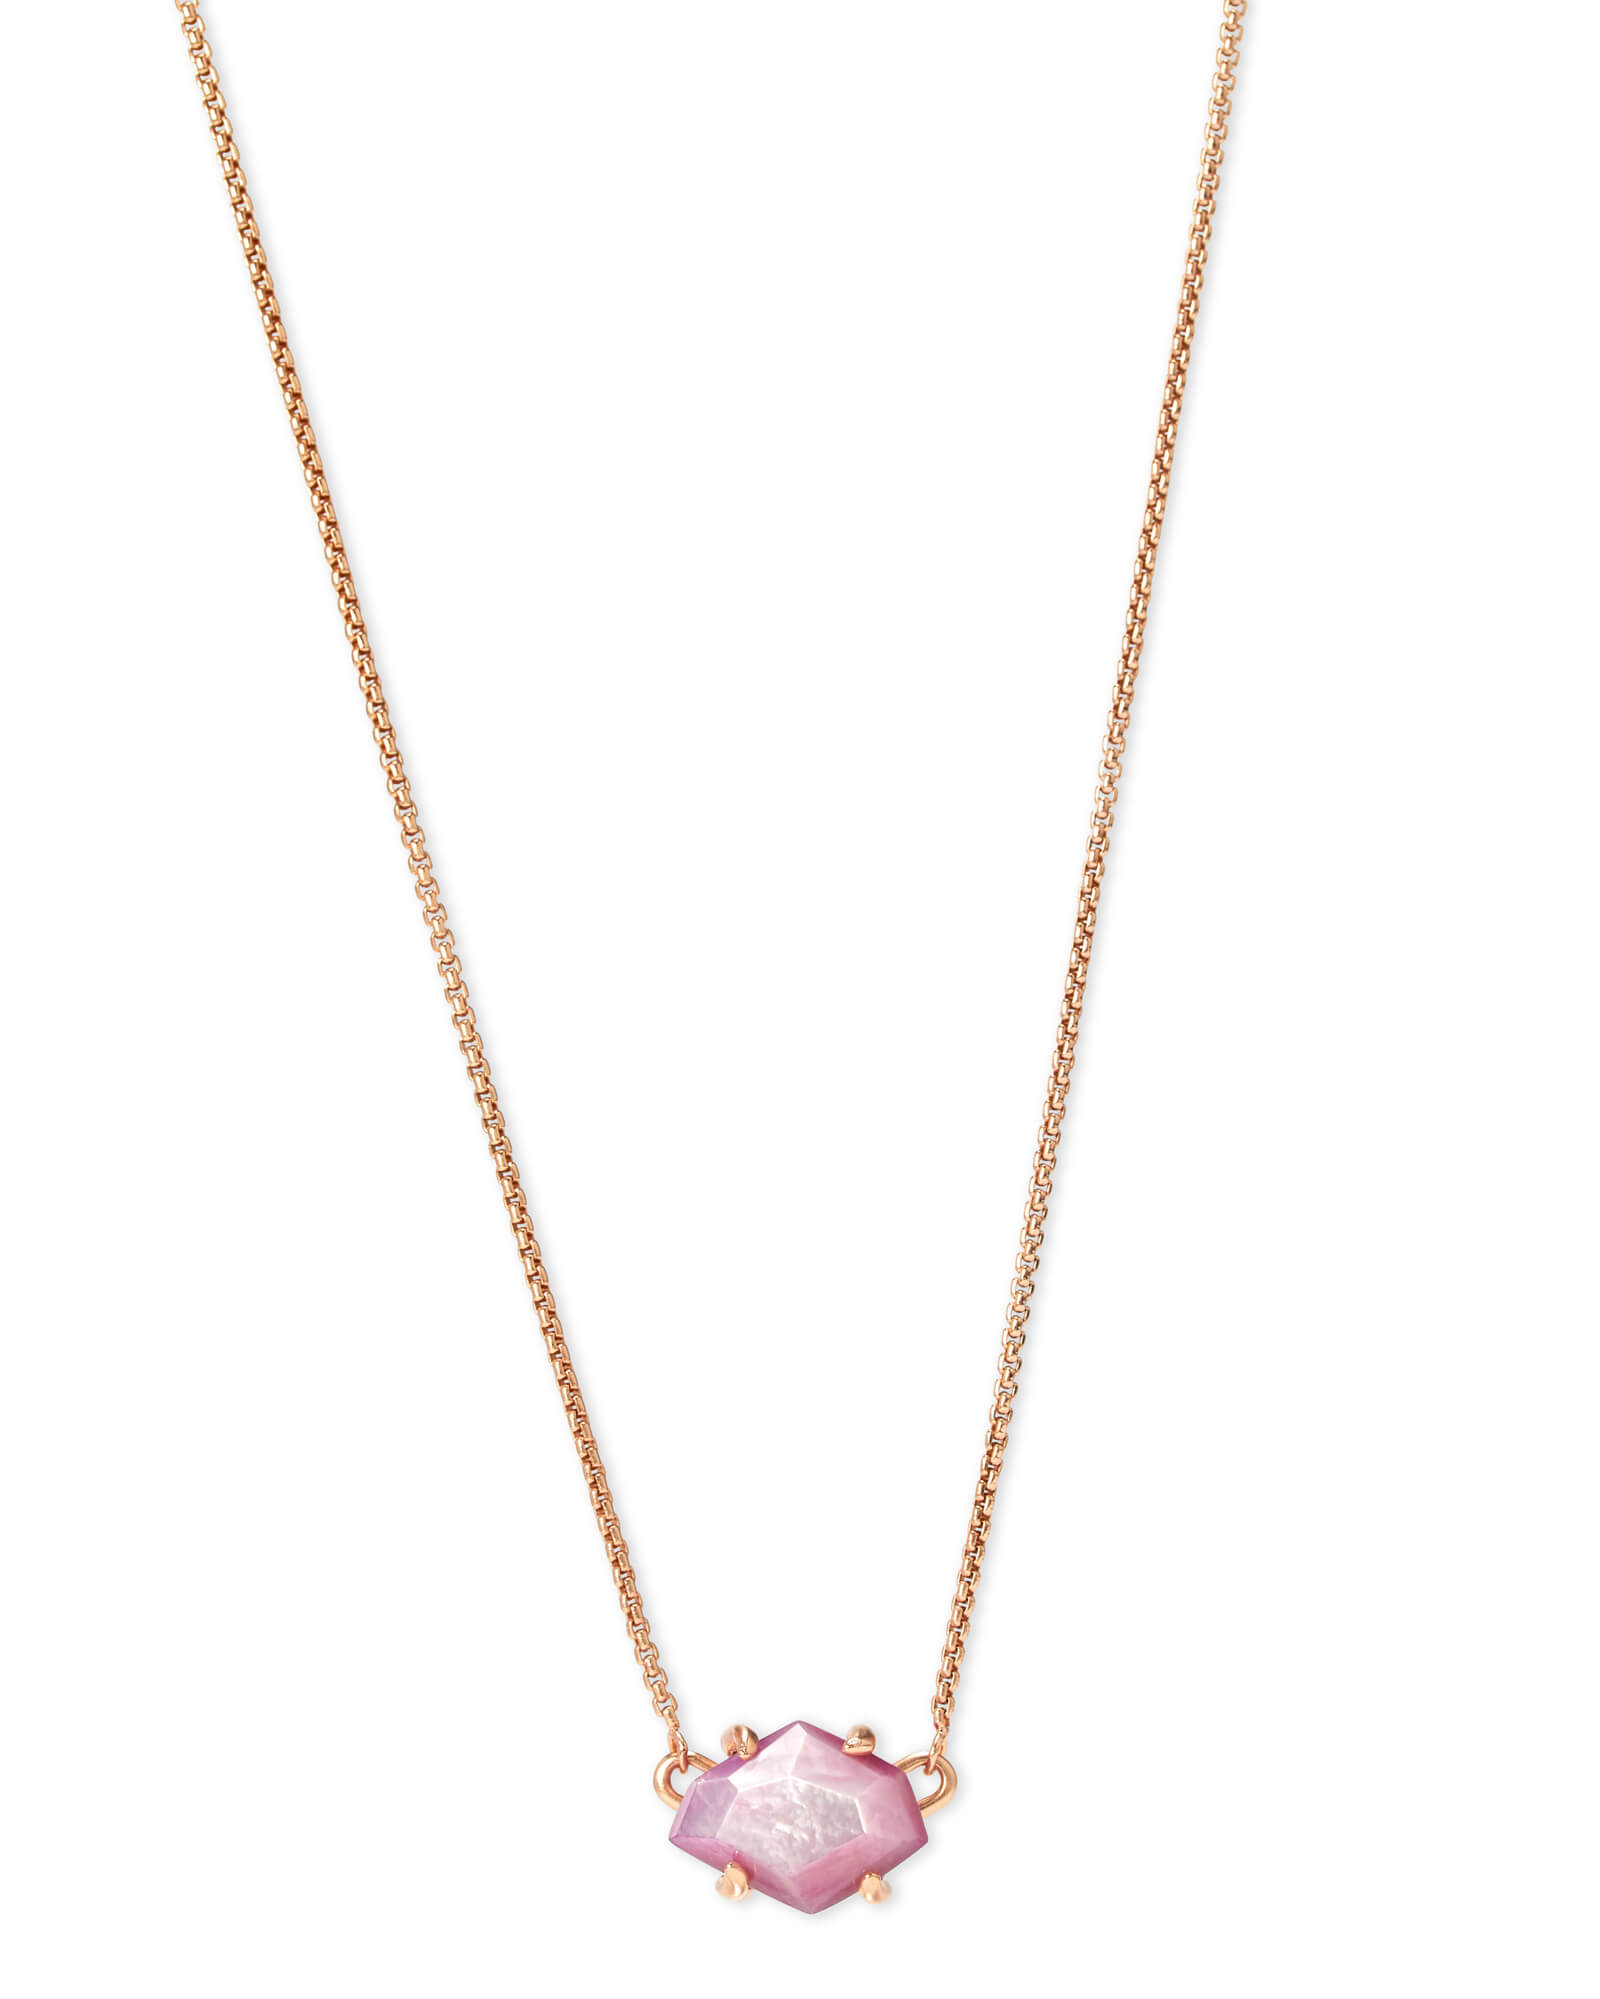 Ethan Rose Gold Pendant Necklace In Lilac Mother of Pearl